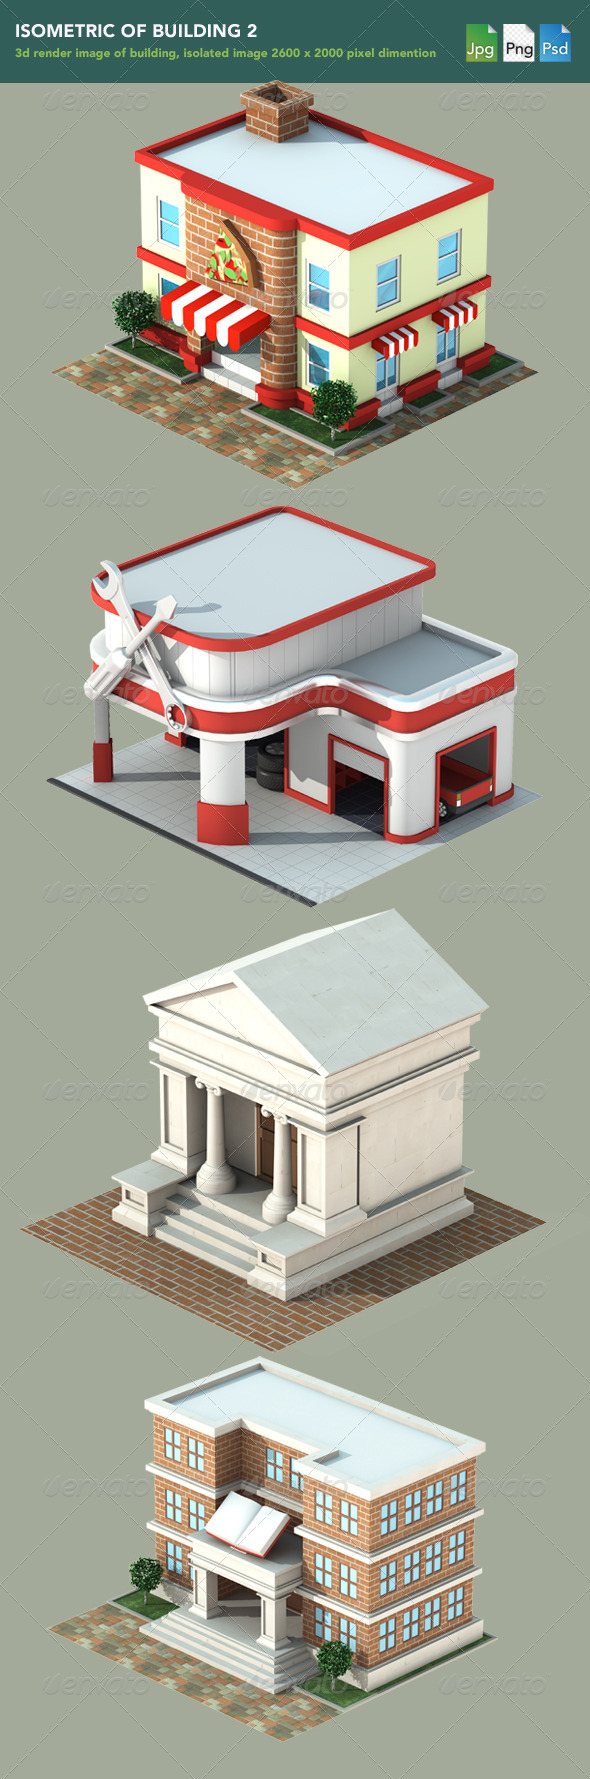 Isometric 3D Render of Building 2 - 3D Renders Graphics